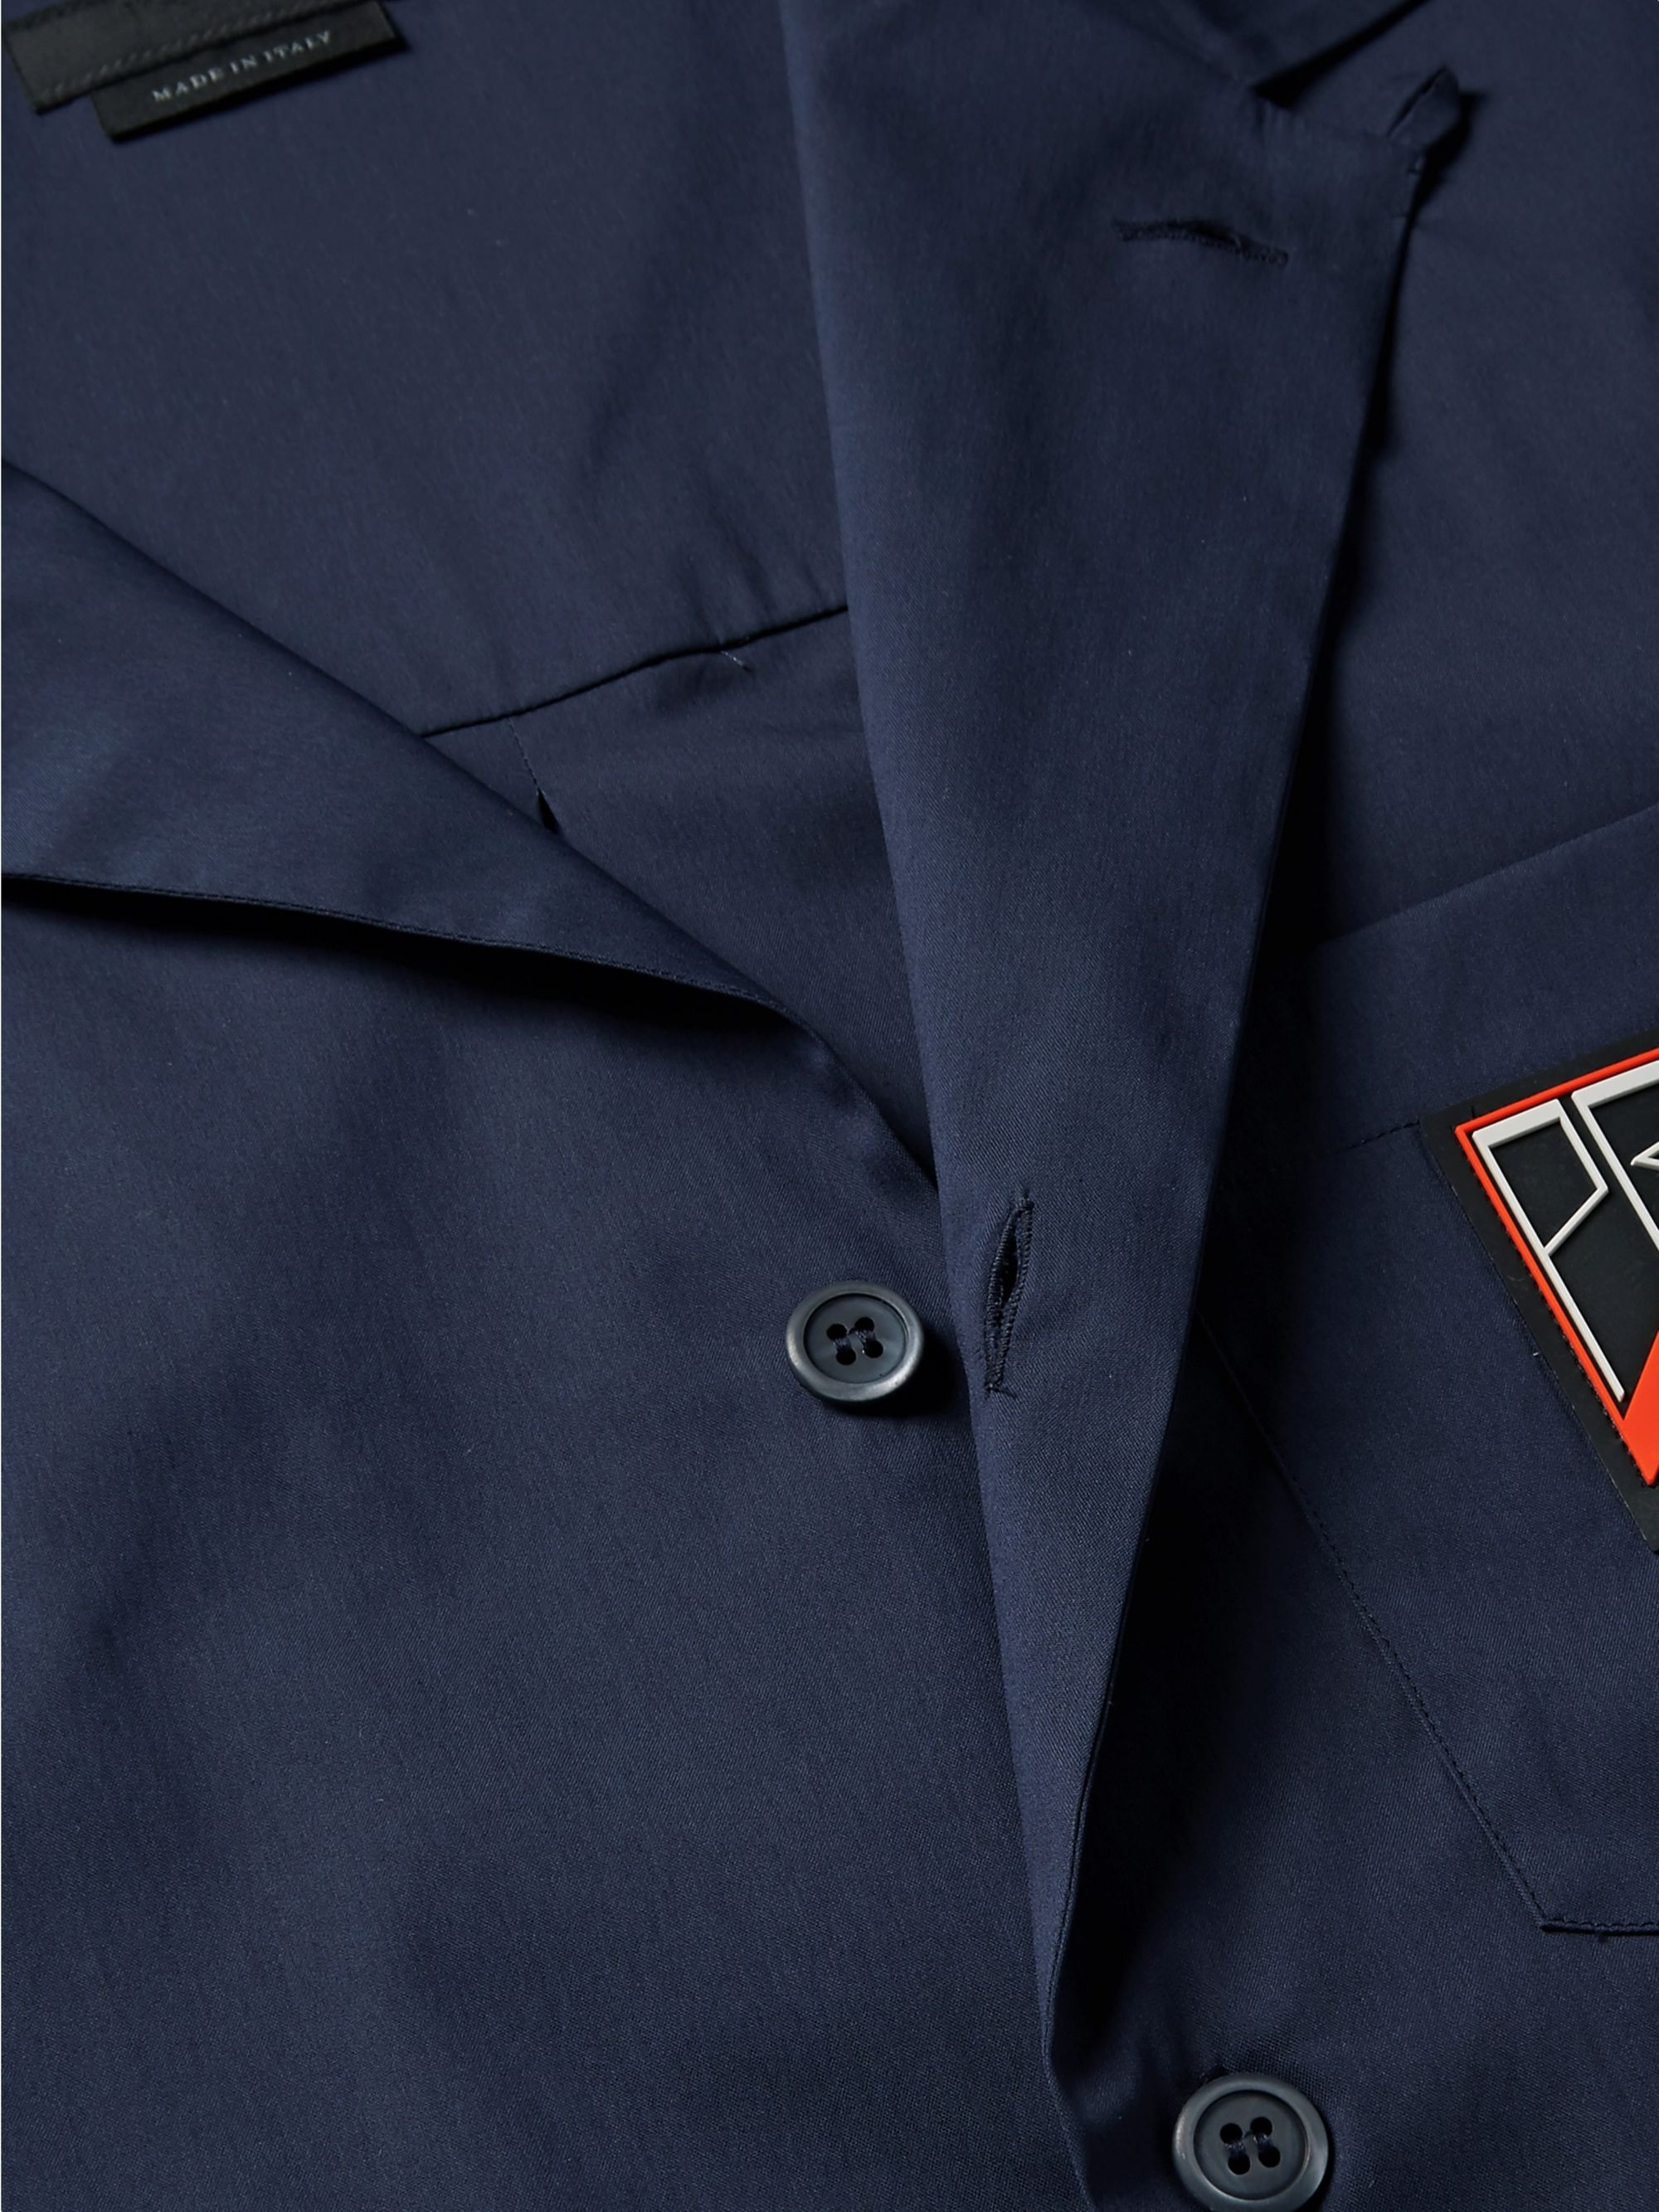 Prada Camp-Collar Logo-Appliquéd Stretch-Cotton Poplin Shirt